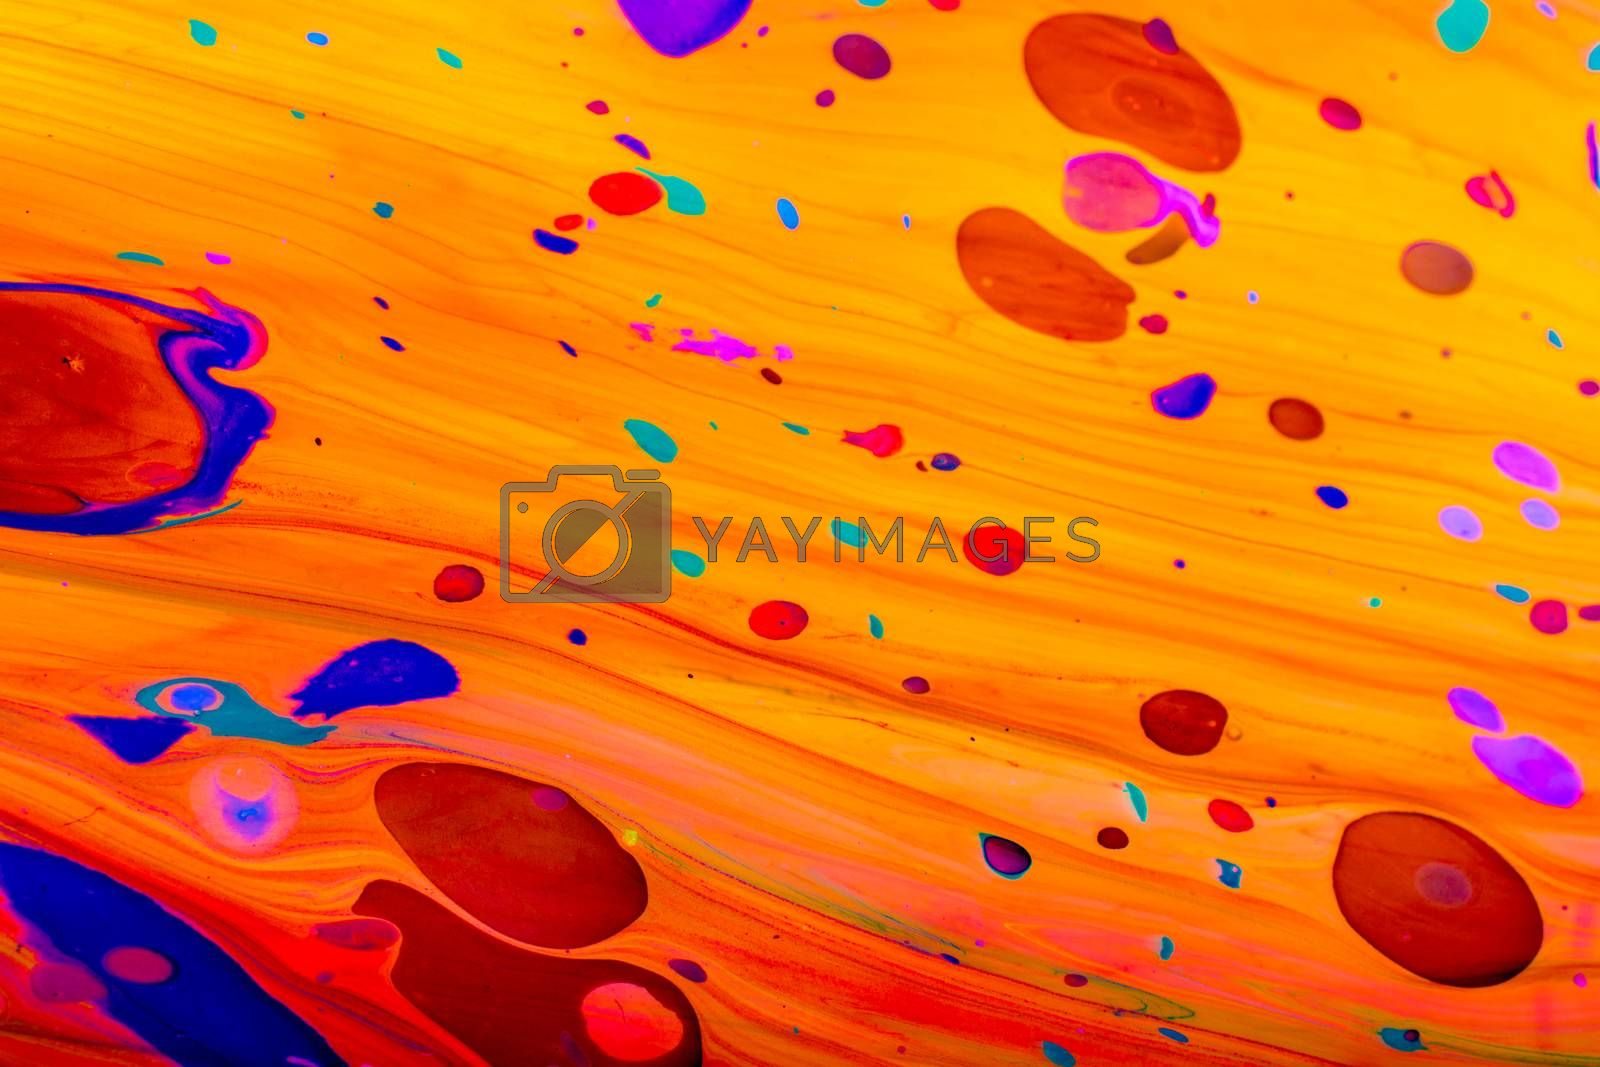 Traditional Ottoman Turkish marbling art patterns as abstract colorful background